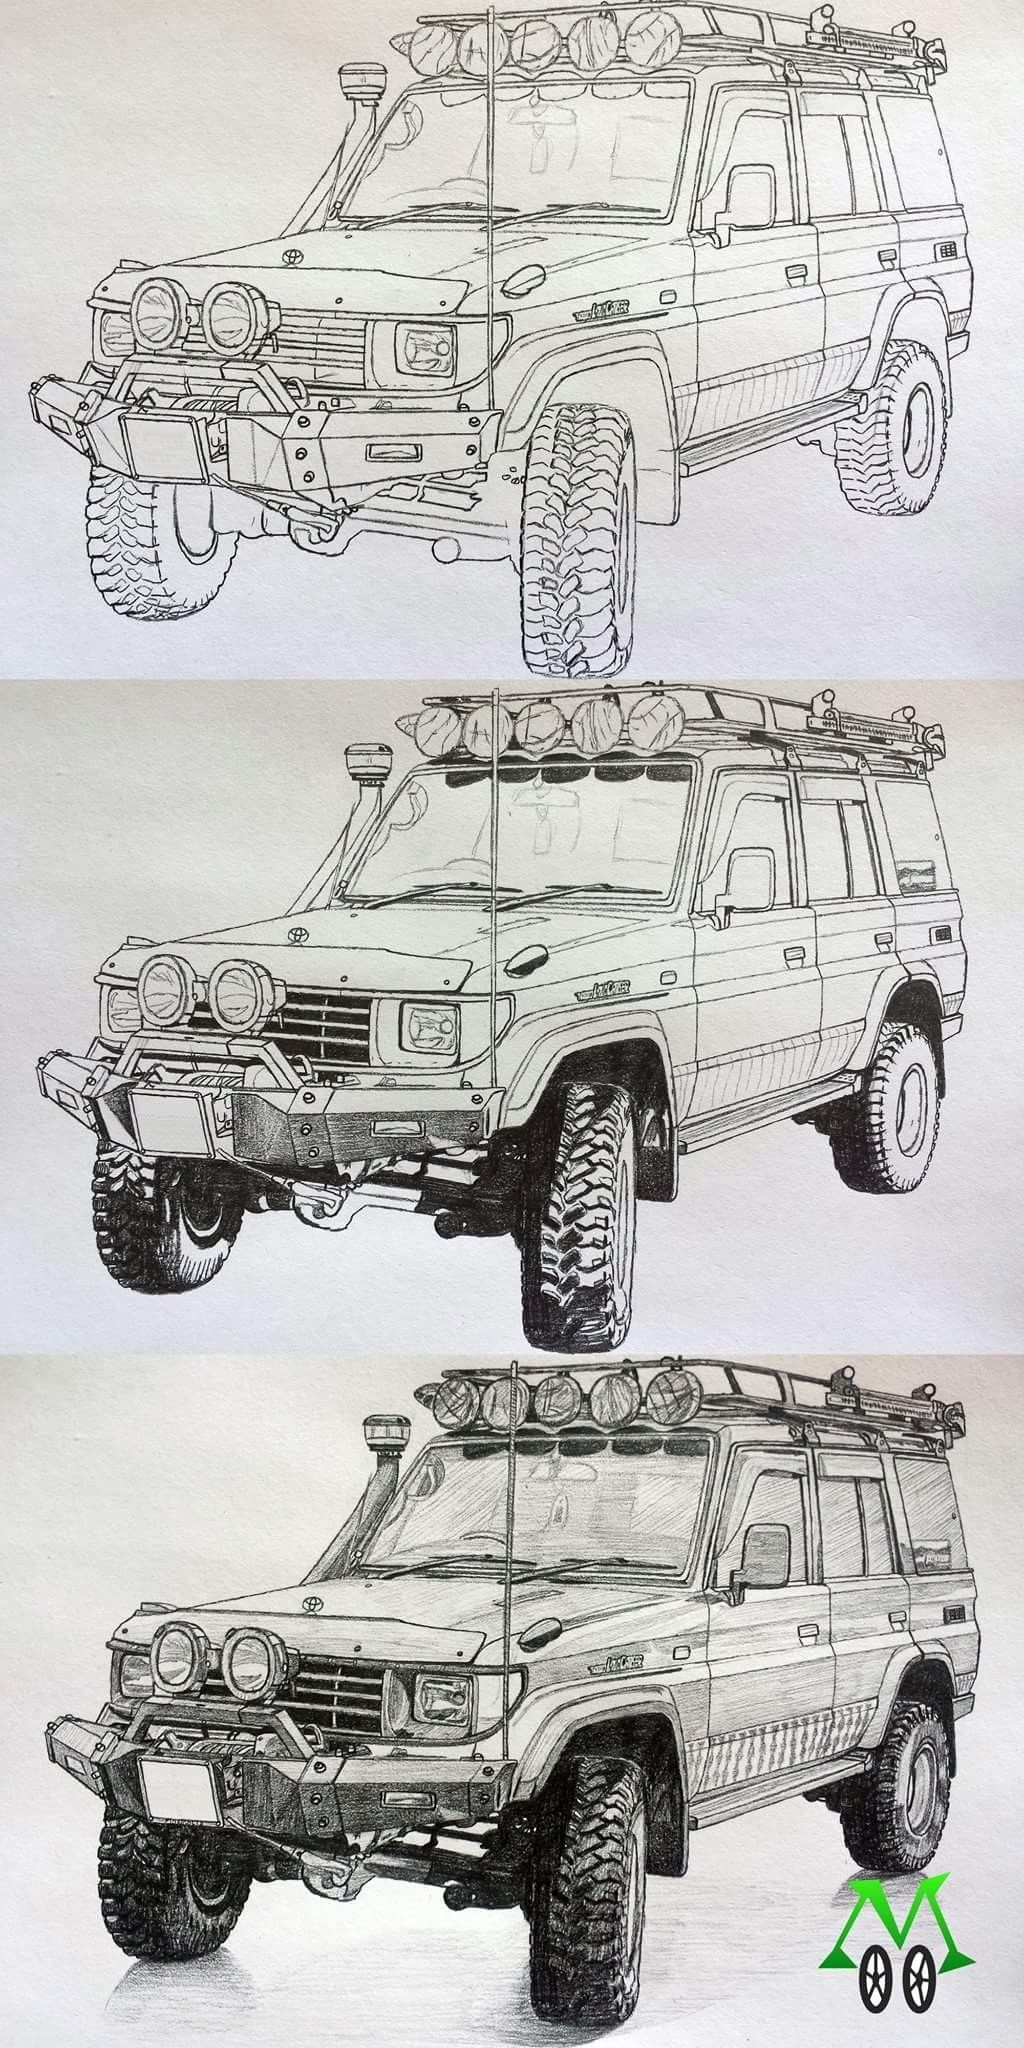 Pin By Kacper Mis On Toyota Classic Cars Toyota Land Cruiser Prado Land Cruiser Toyota Land Cruiser